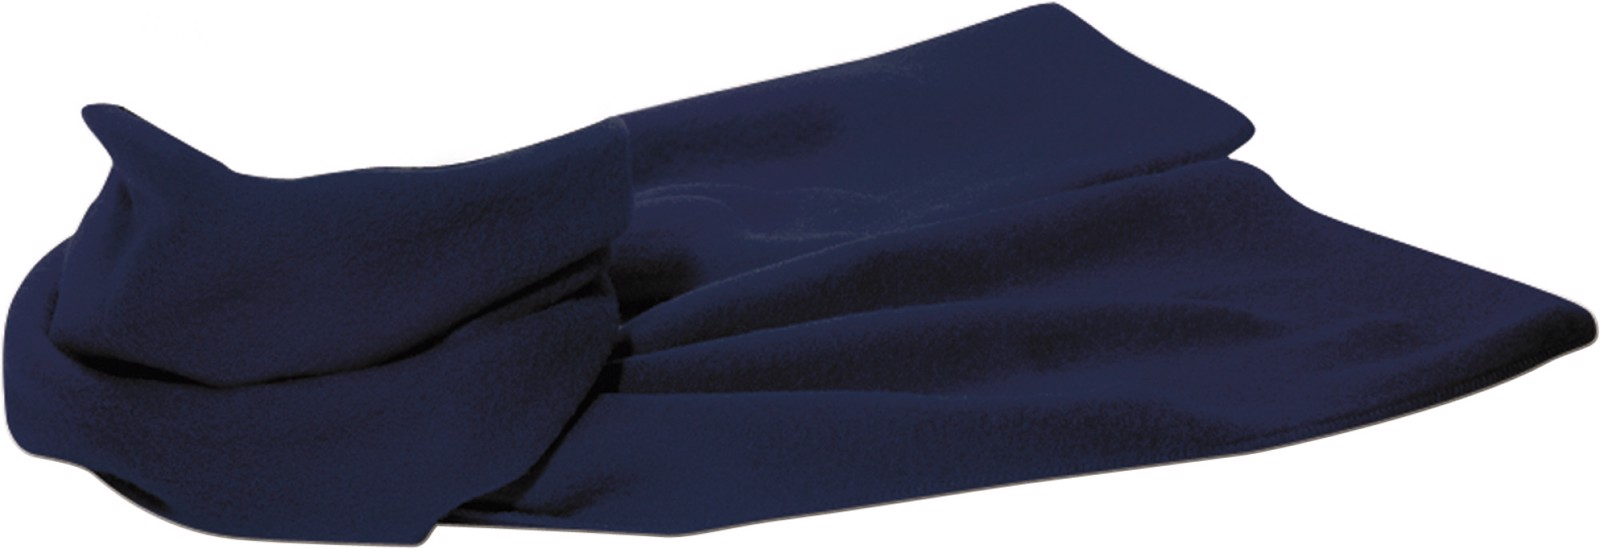 Polyester fleece (200 gr/m²) scarf - Blue